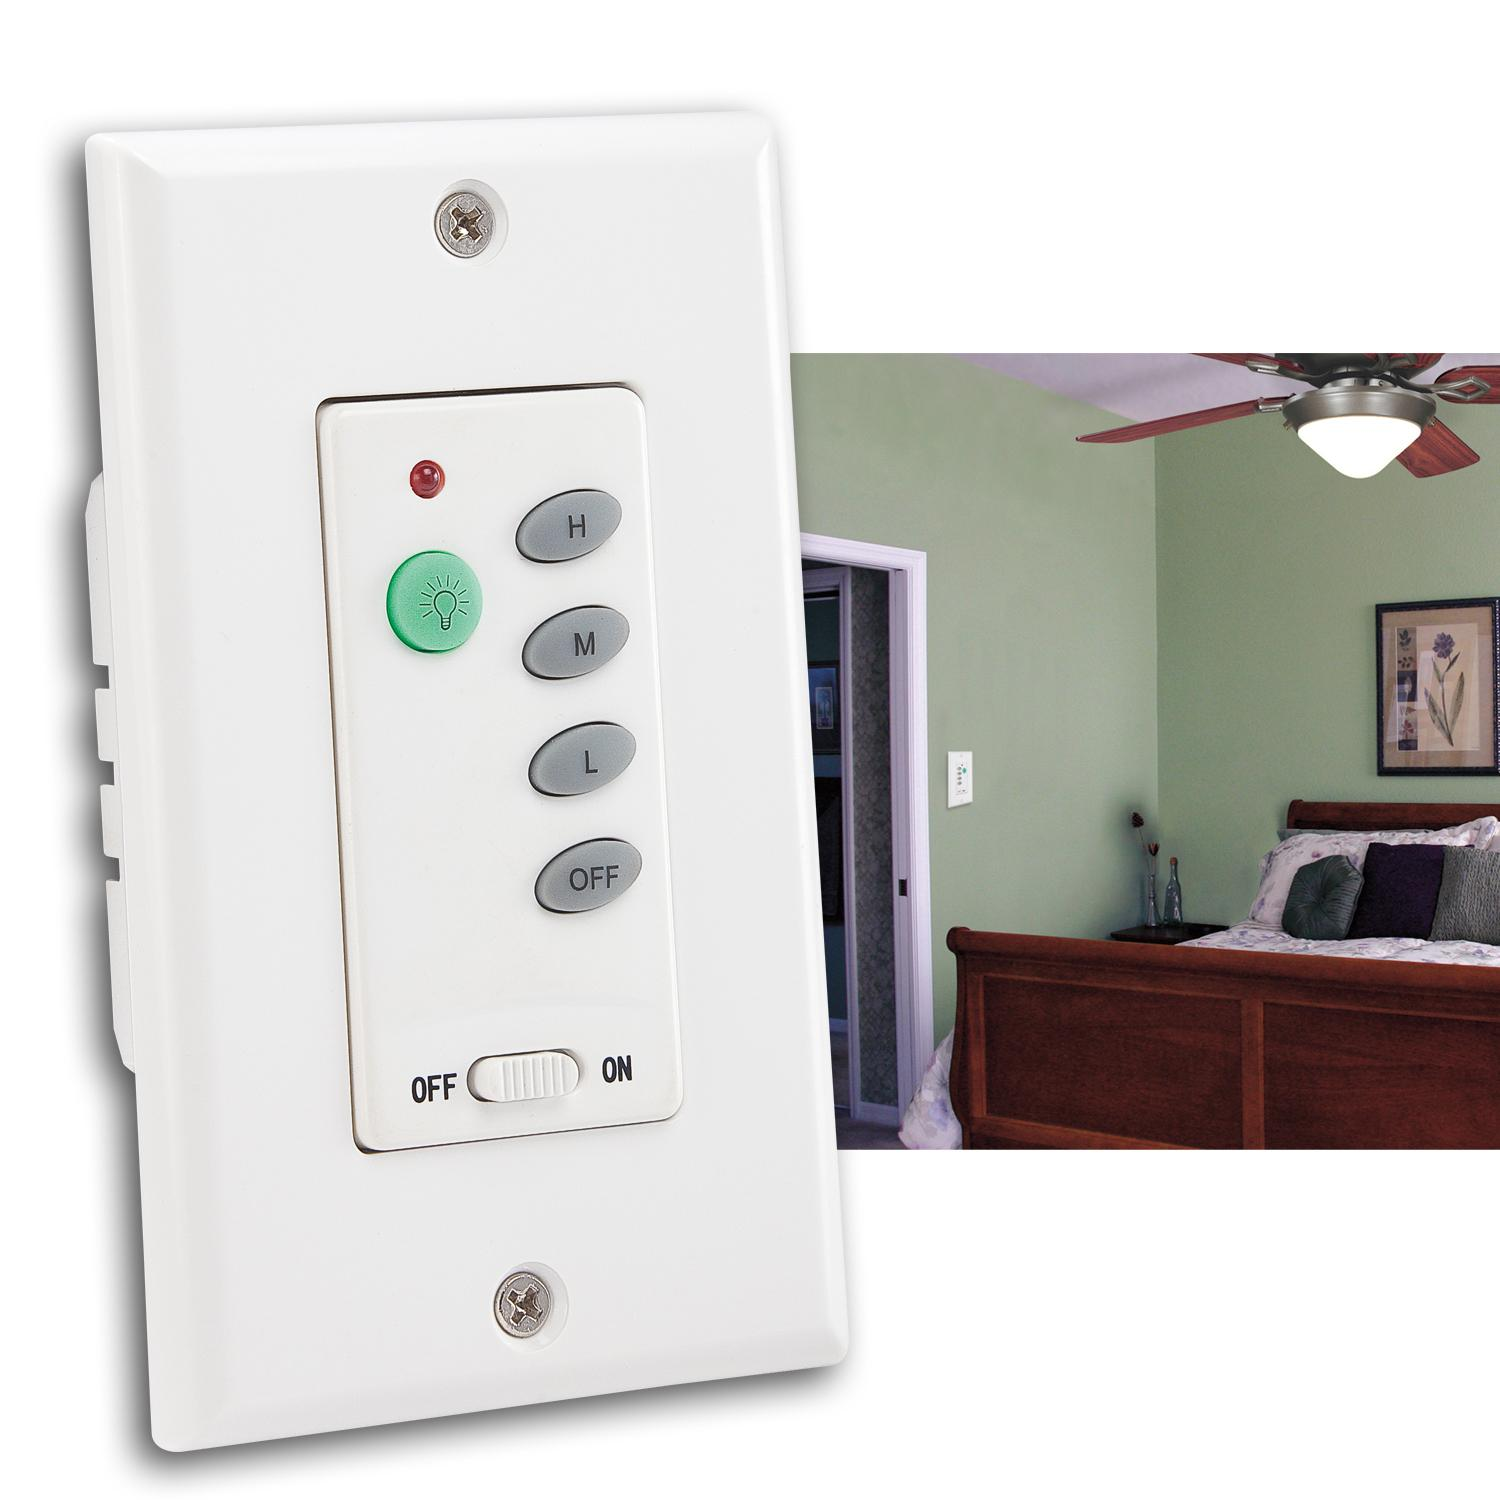 Westinghouse 7787500 wireless ceiling fan and light wall control 7787500 ceiling fan and light wall control mozeypictures